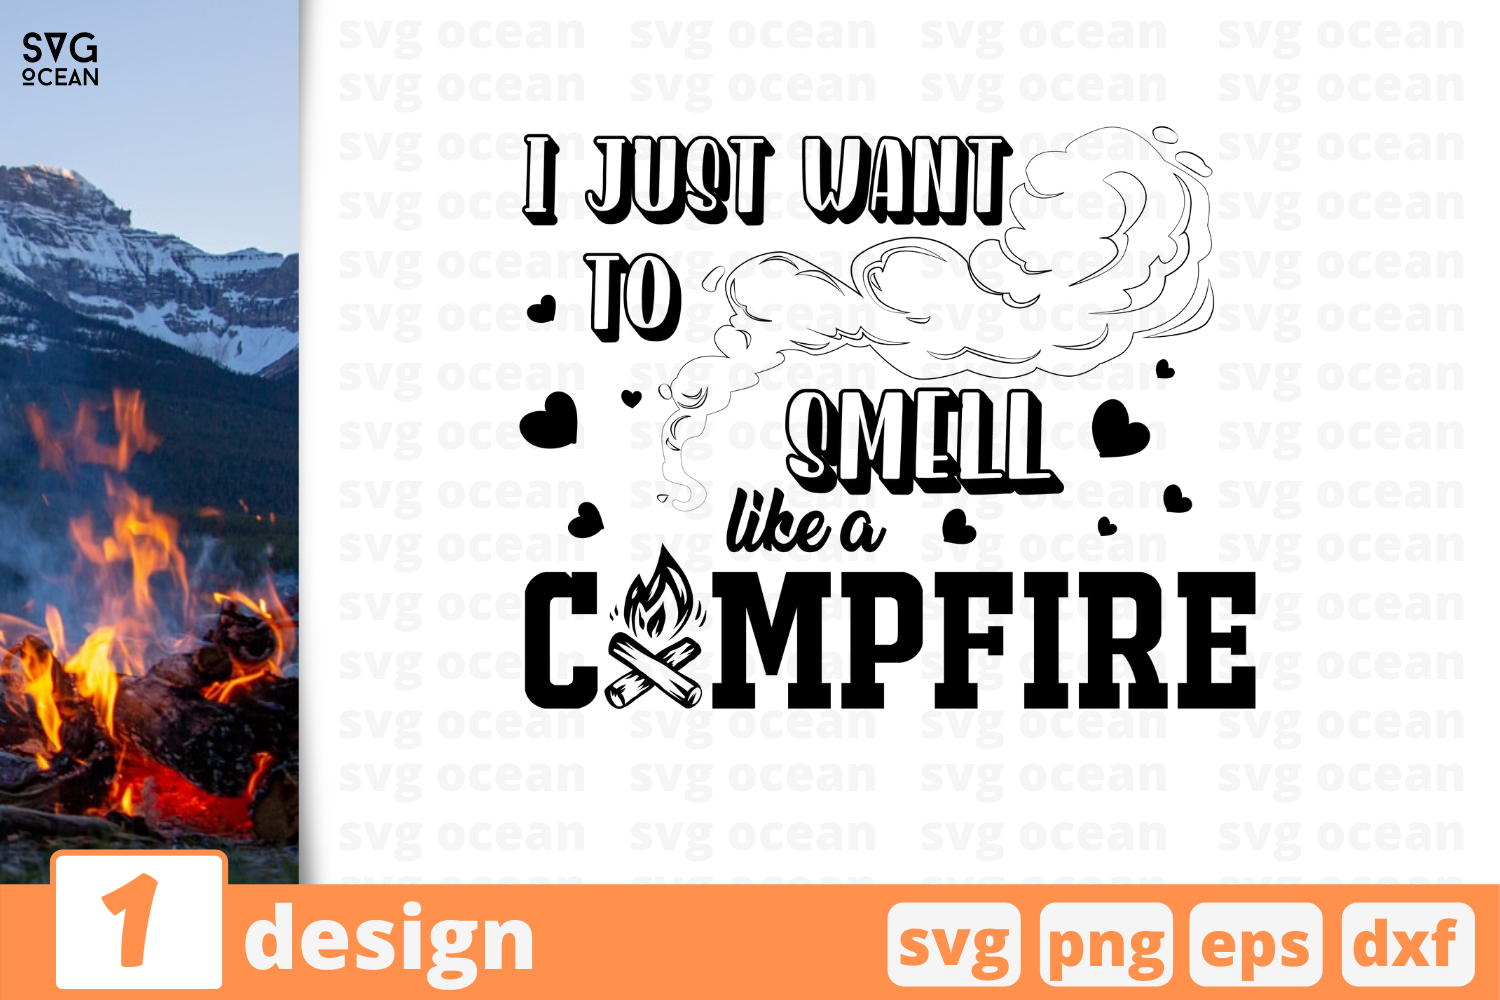 Download Free 1 Like A Campfire Camping Cricut Svg Graphic By Svgocean for Cricut Explore, Silhouette and other cutting machines.